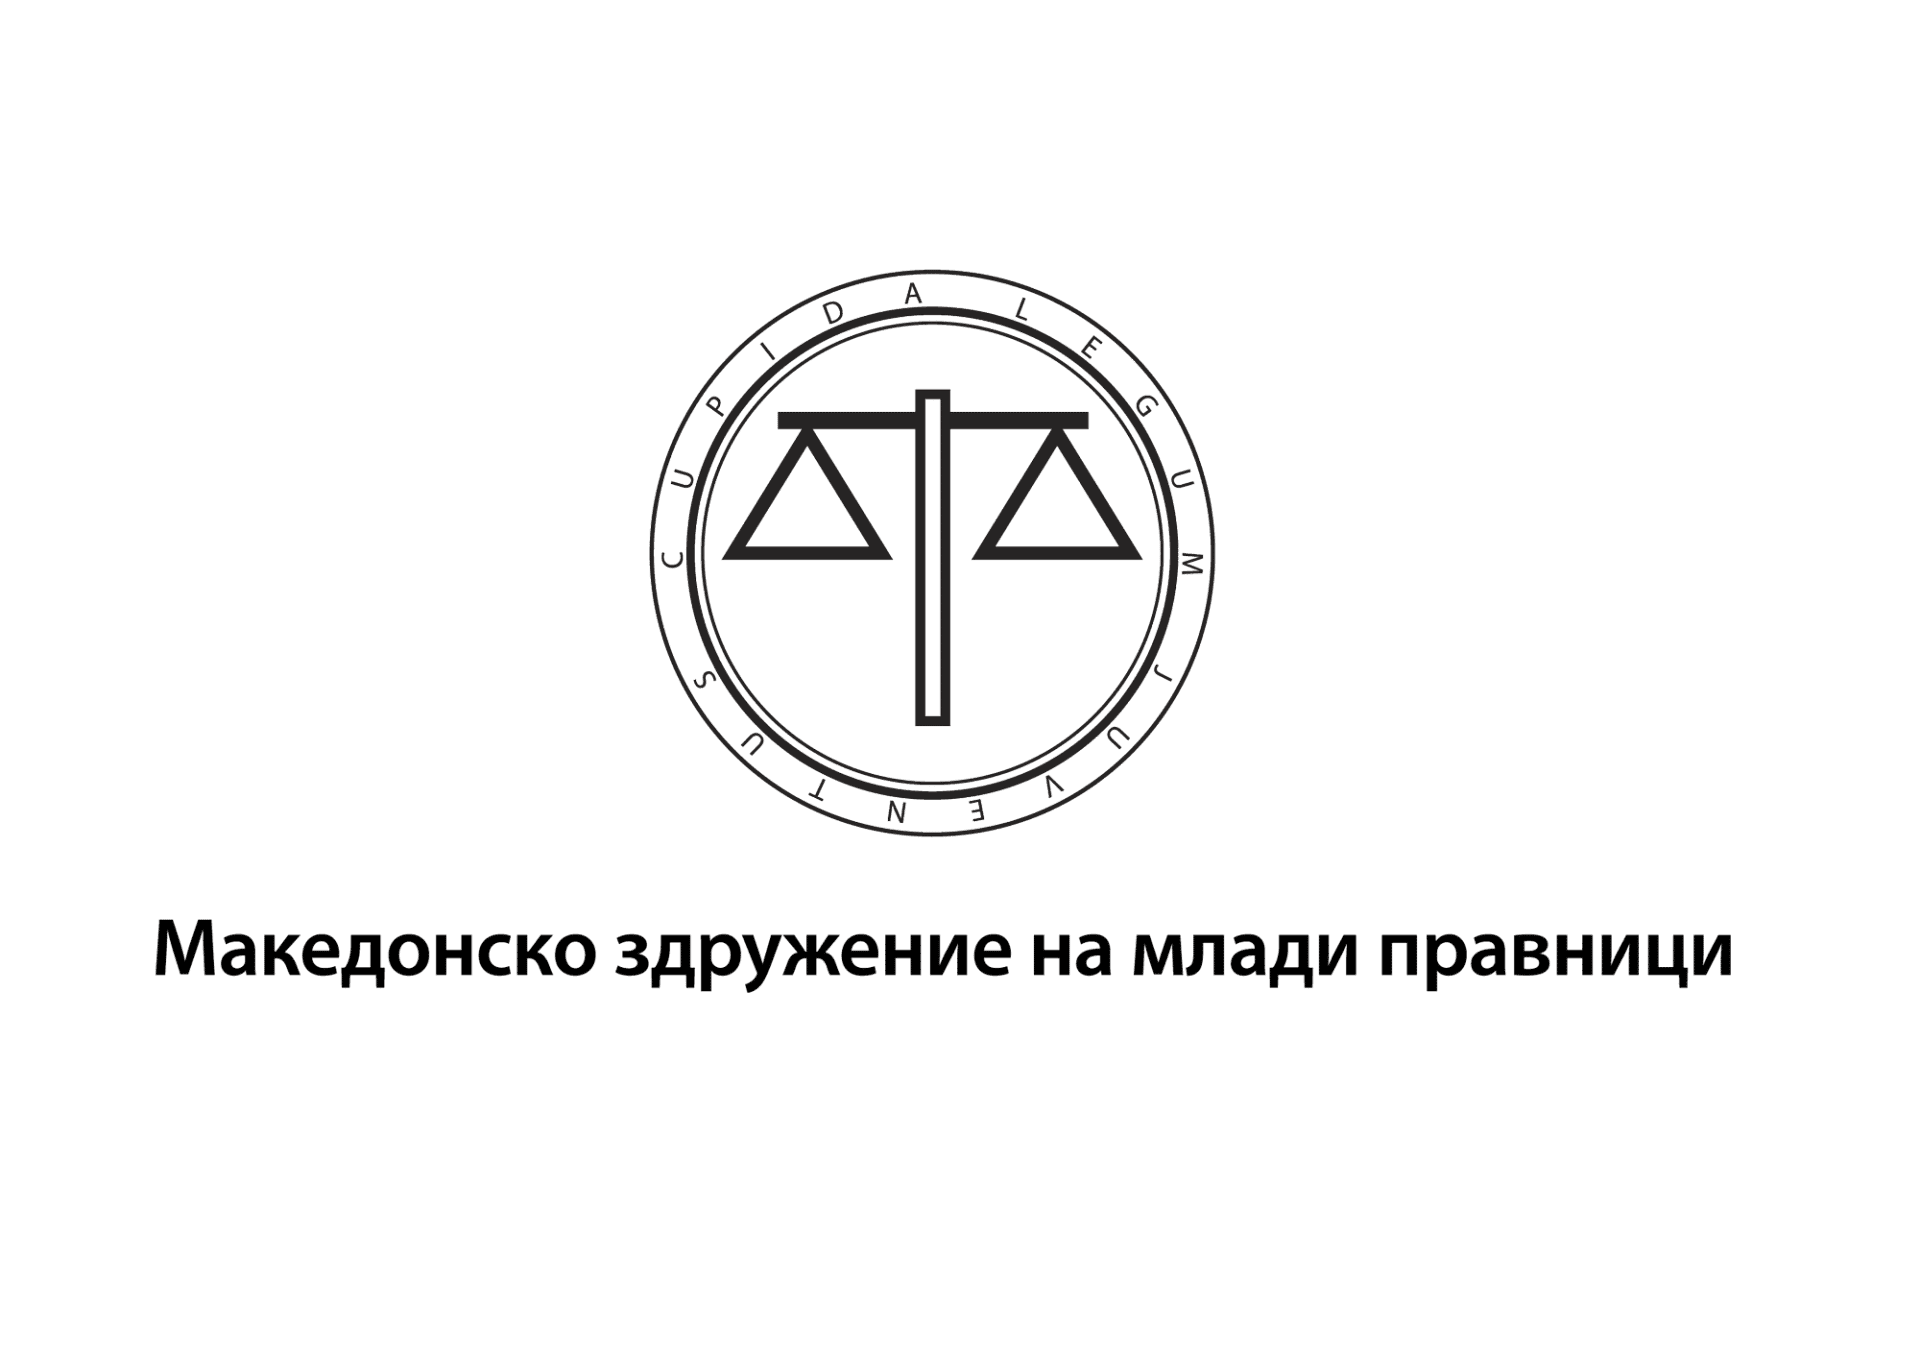 Macedonian Young Lawyers Association